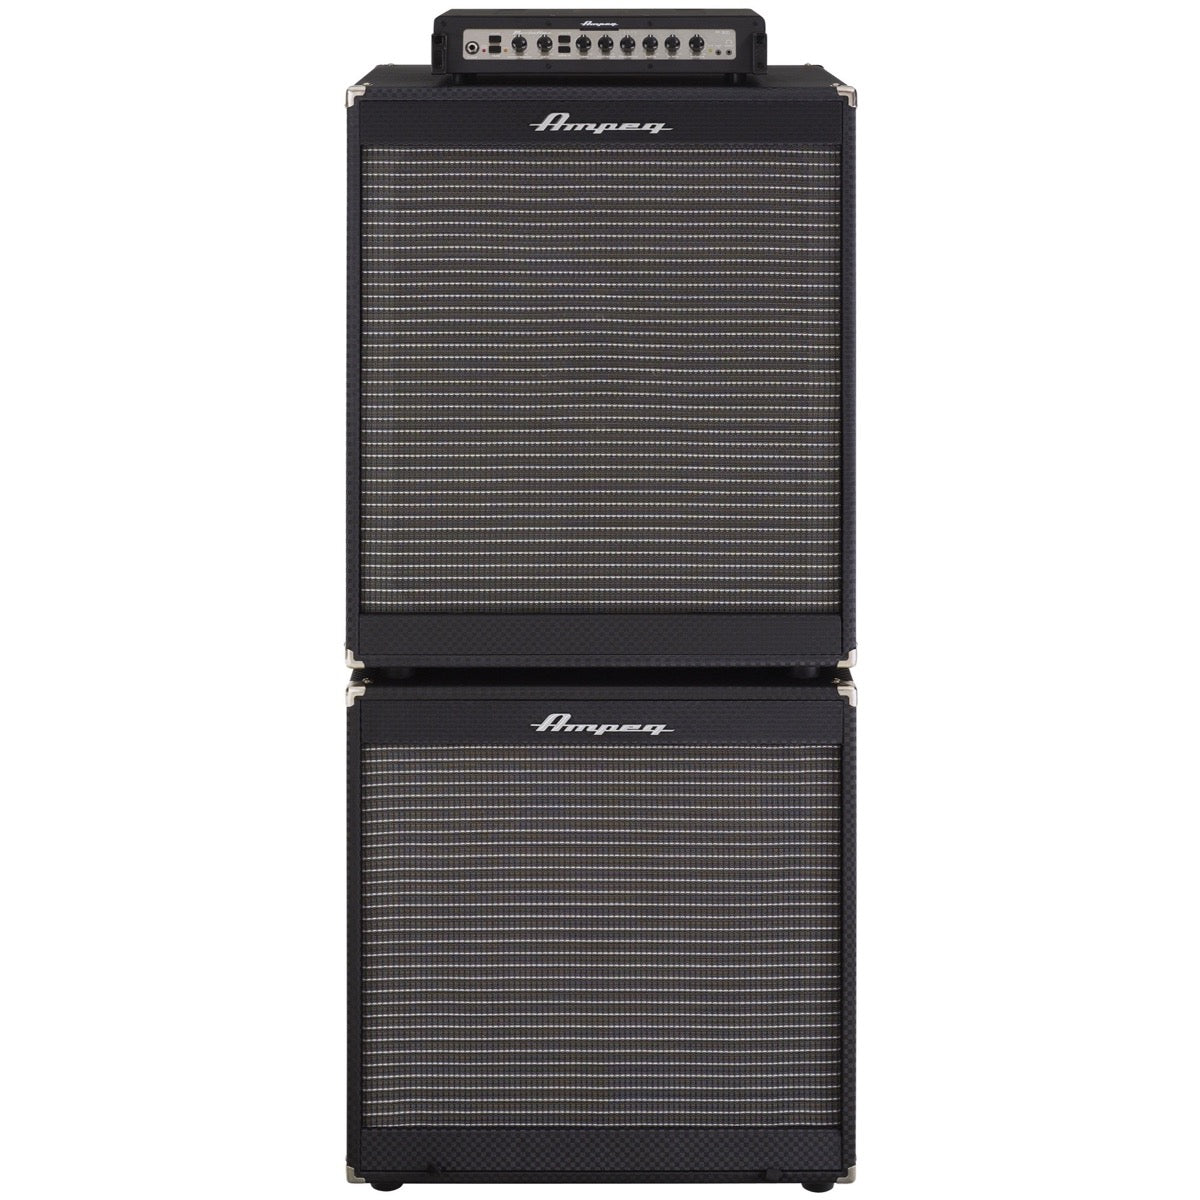 Ampeg Portaflex Head and Dual Cabinet Bass Amplifier Stack